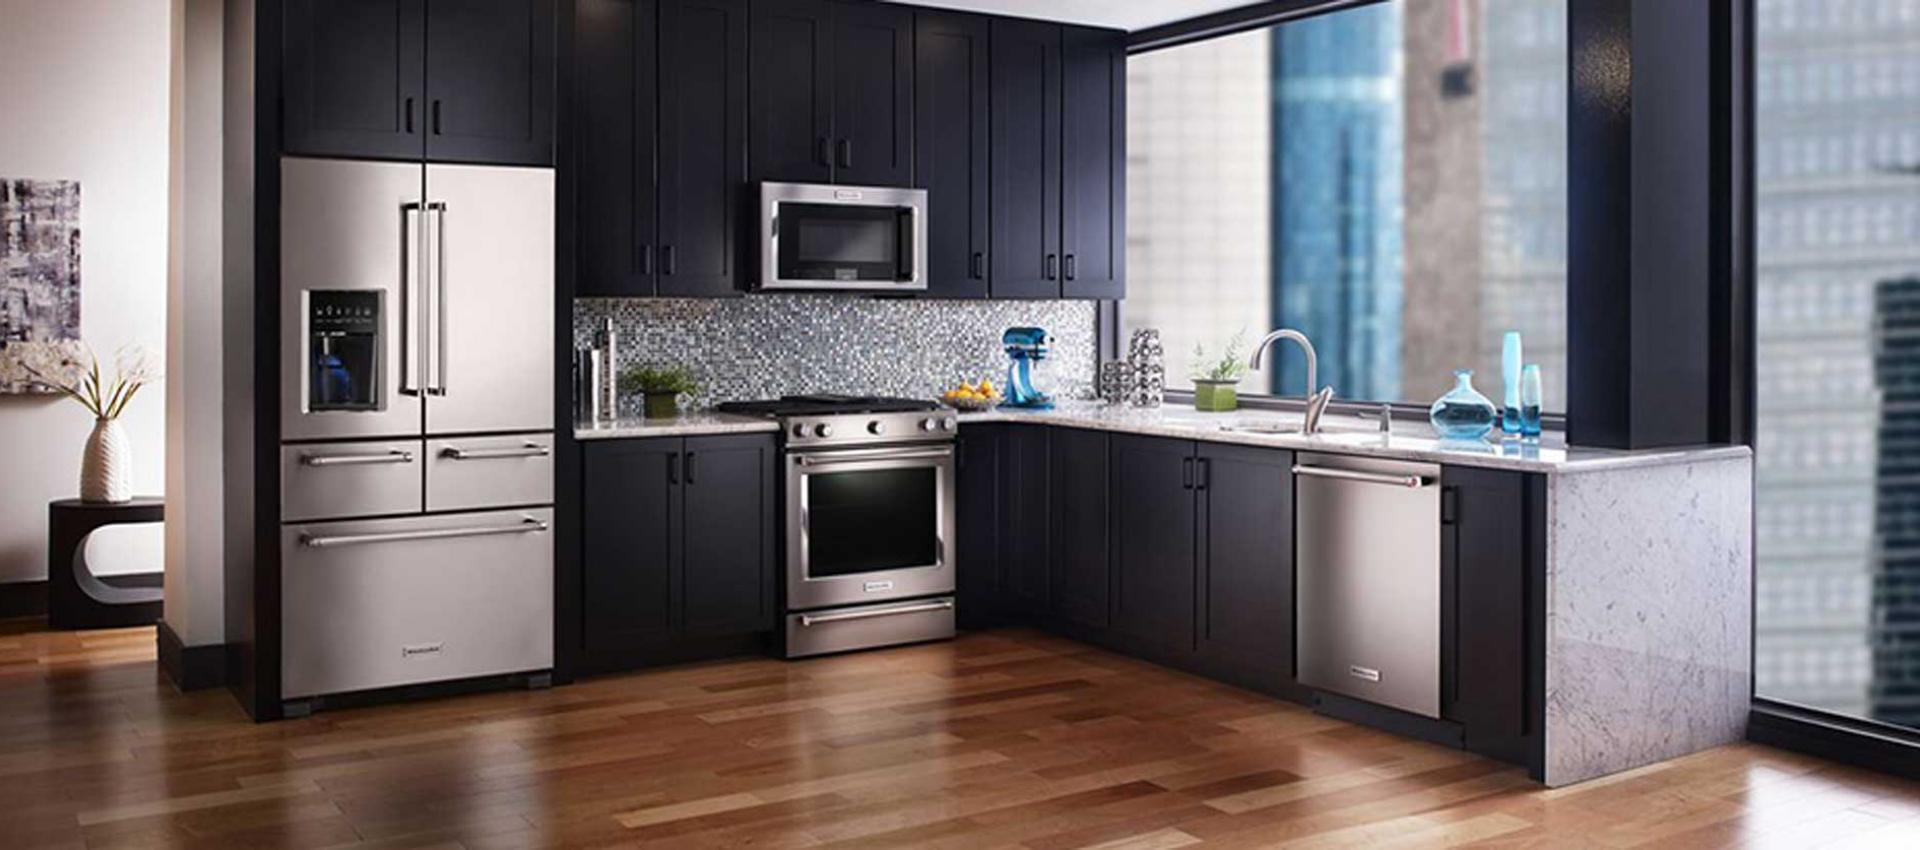 Uncategorized Kitchen Appliance Repairs lees appliance repair denver kitchen in denver